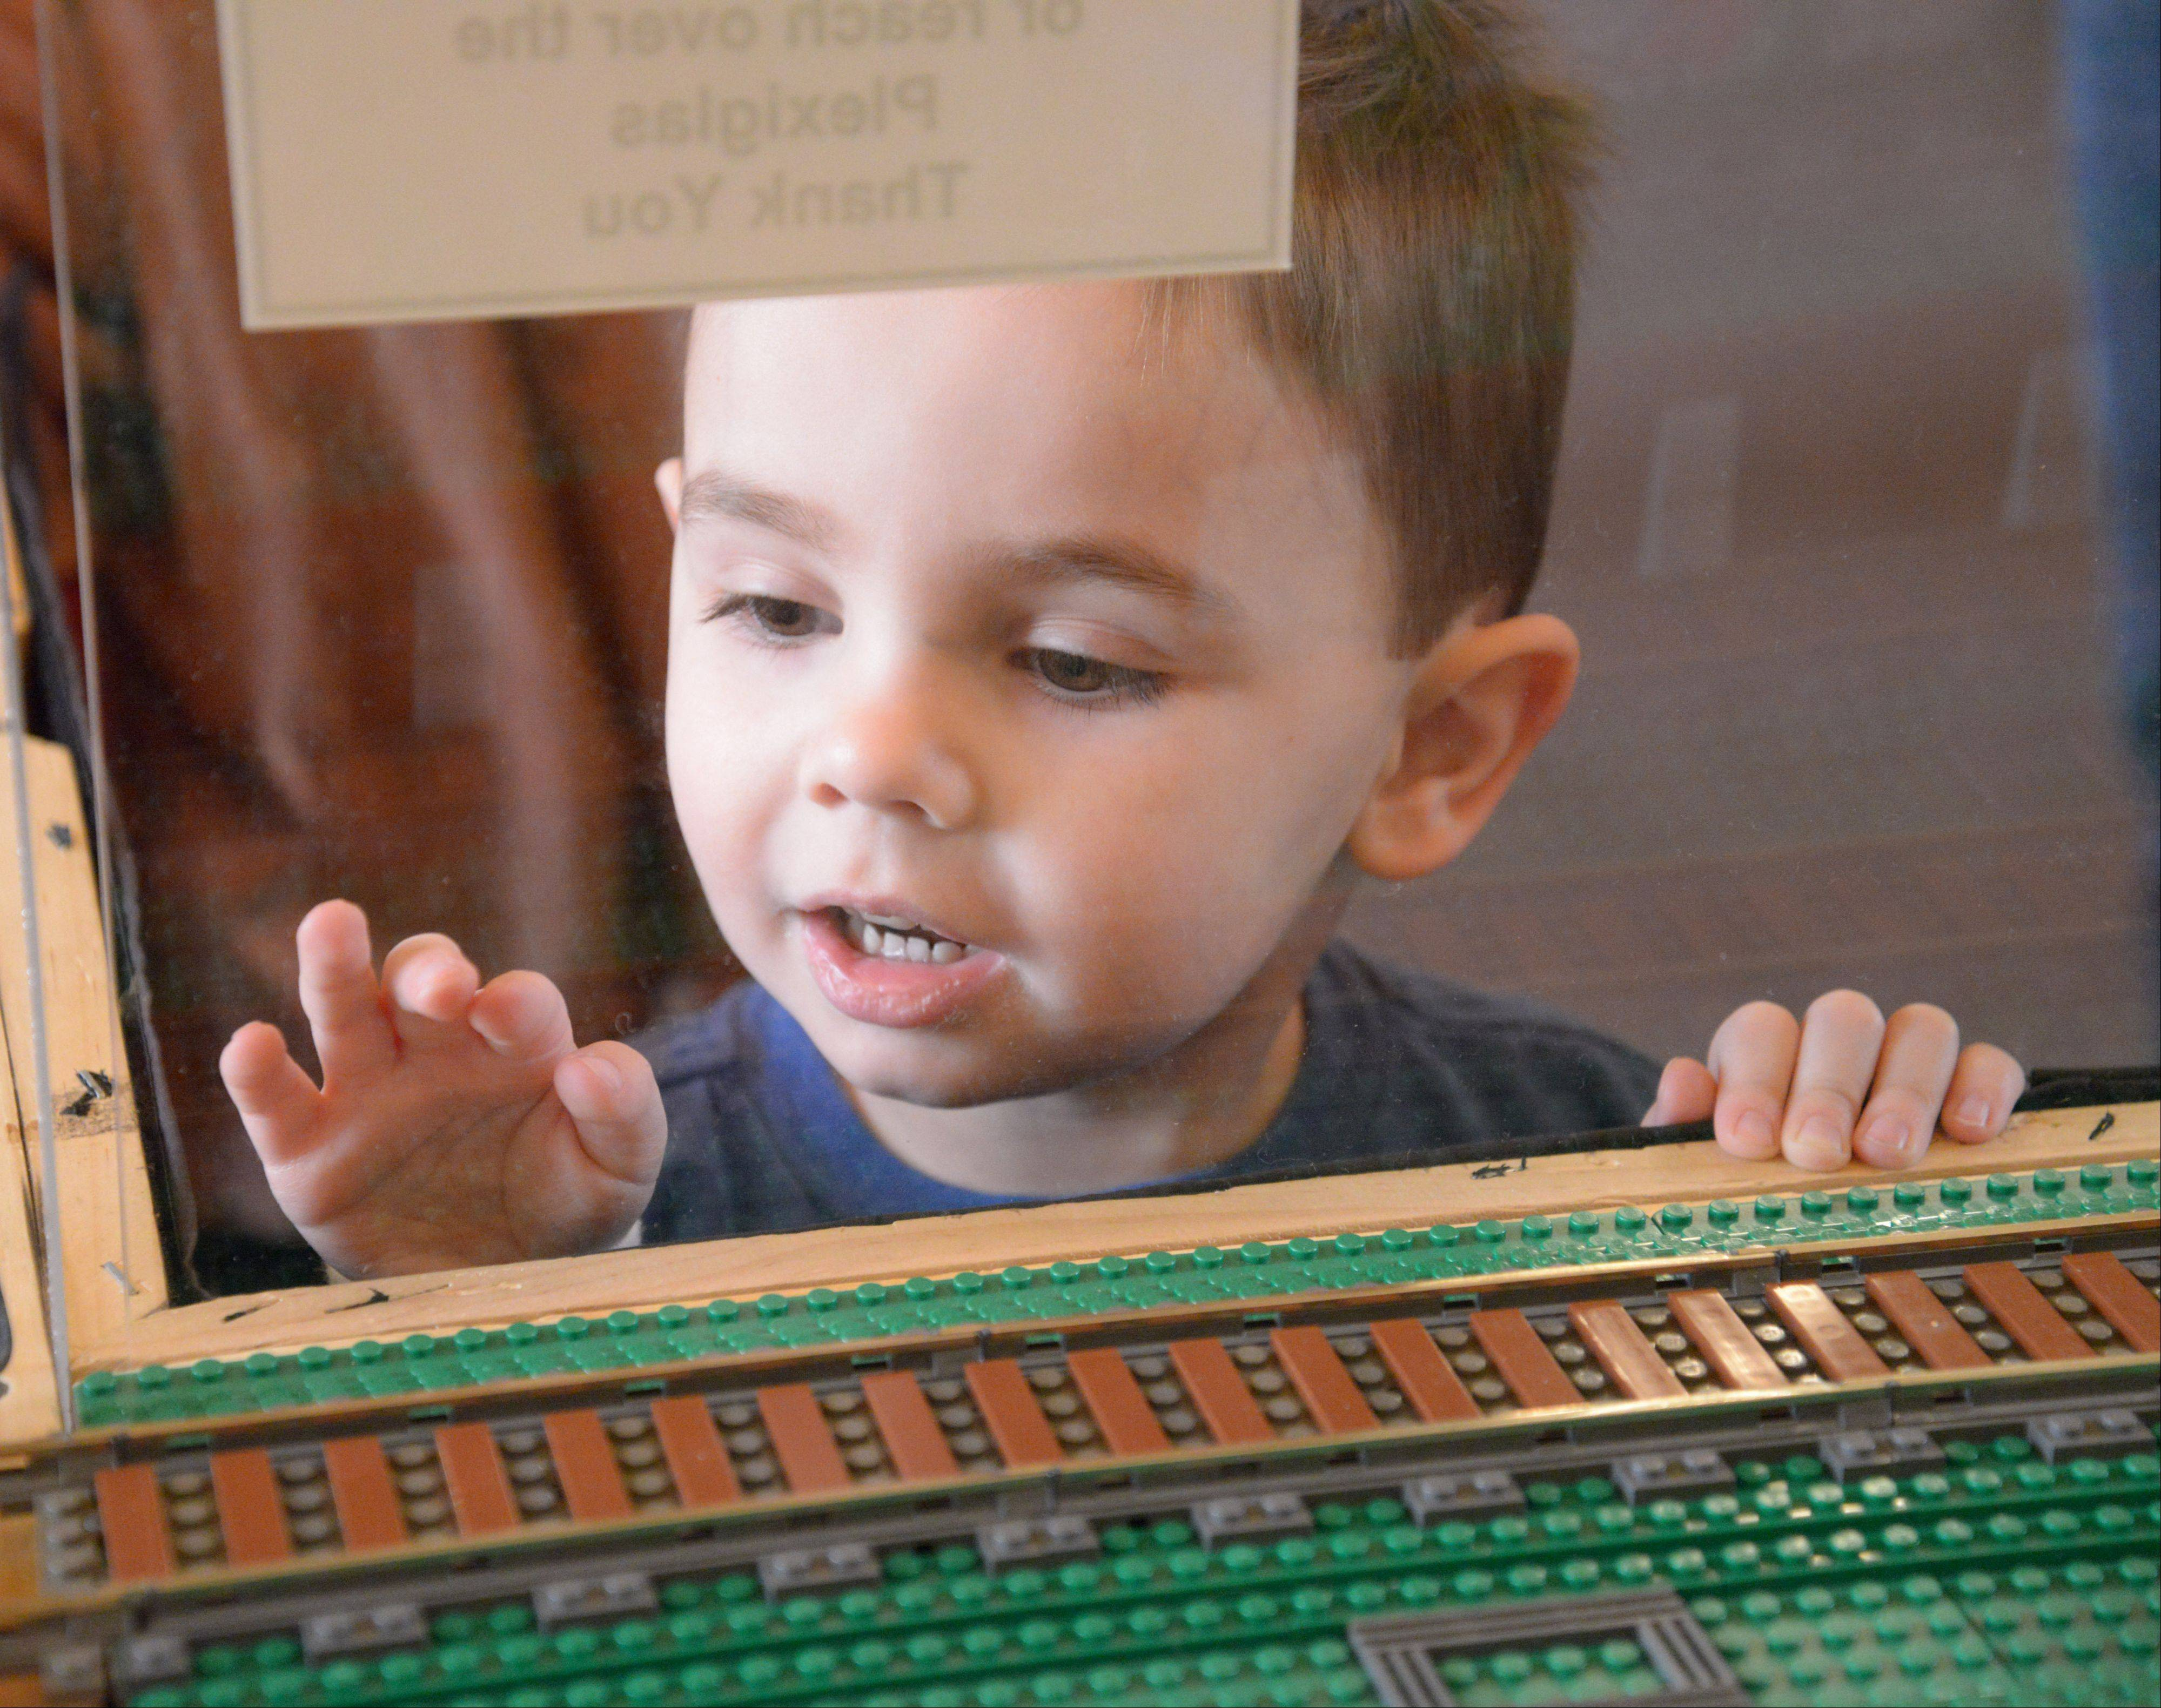 Roger Shorney, 4, of Wheaton can't get enough Lego while visiting the Northern Illinois Lego Train Club's show Saturday at the DuPage County Historical Museum in Wheaton. The event continues Sunday.